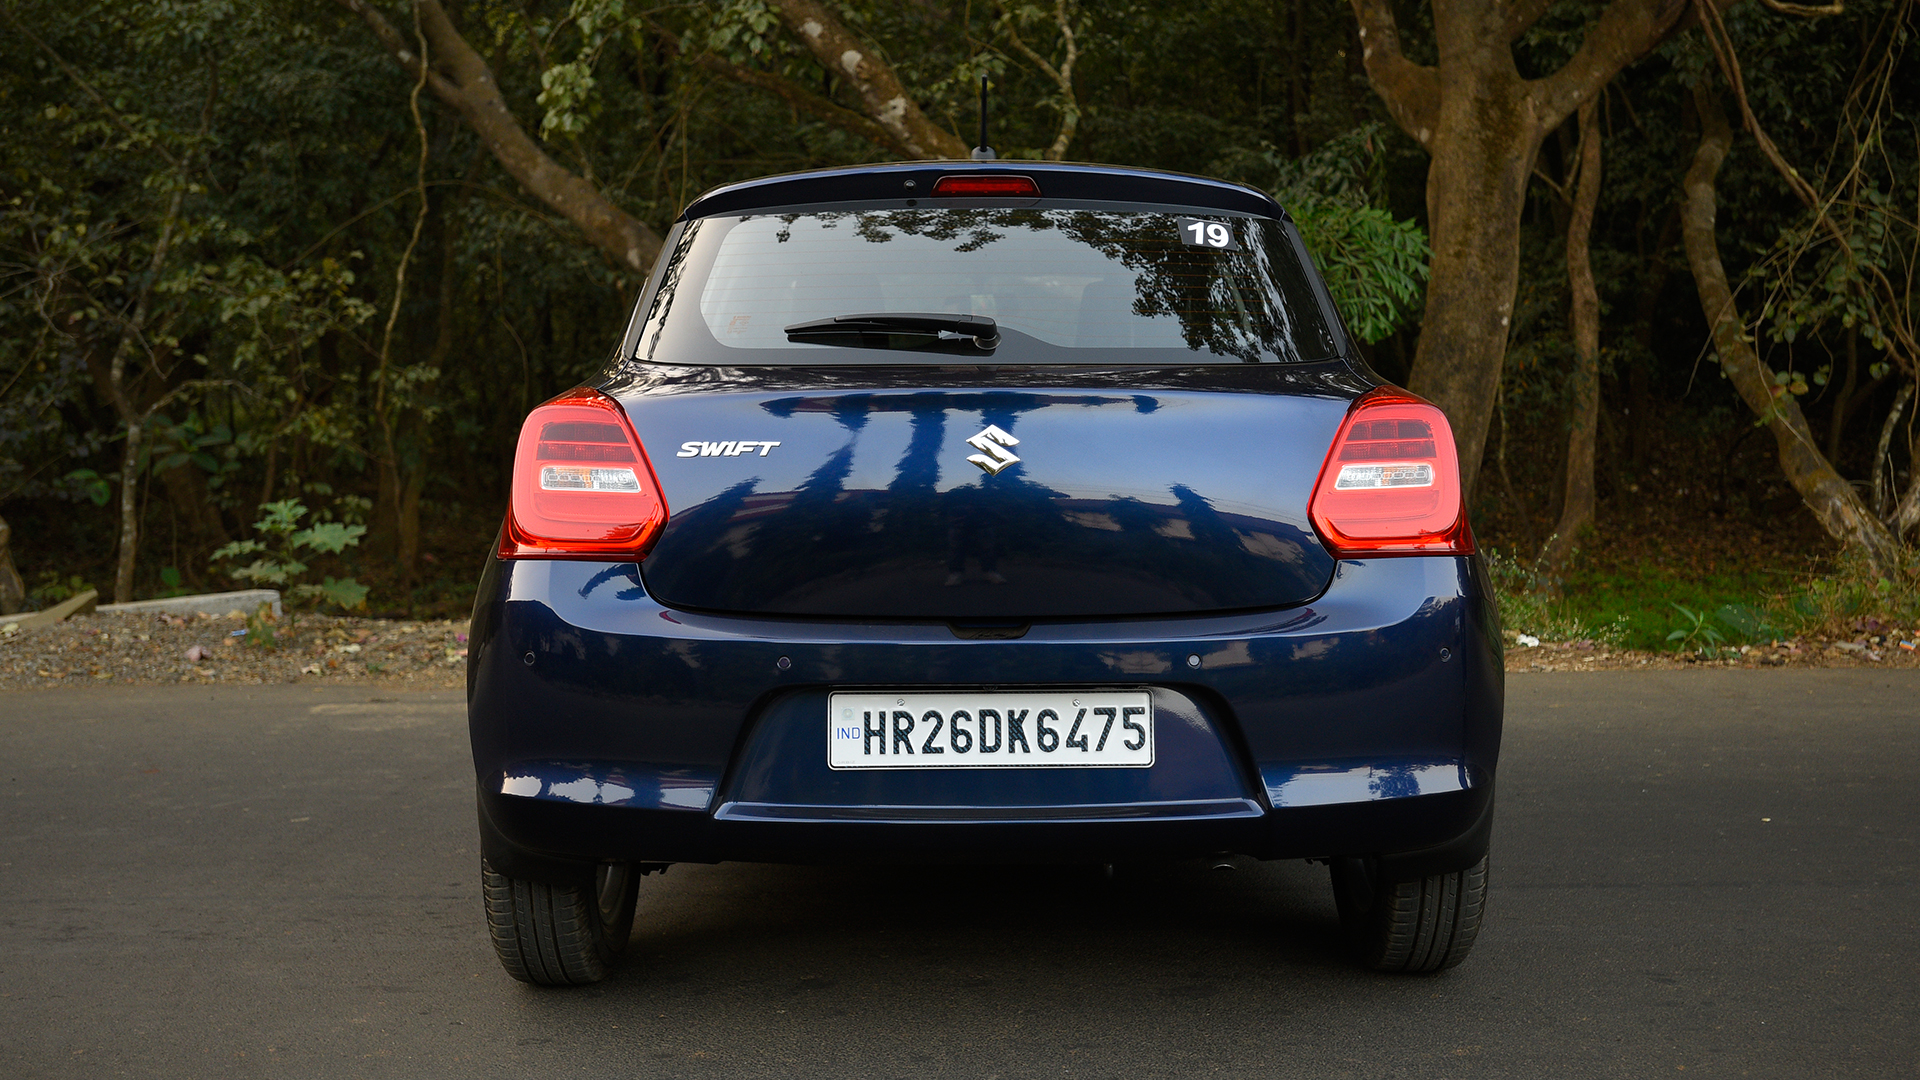 Maruti Suzuki Swift Diesel Full Specification